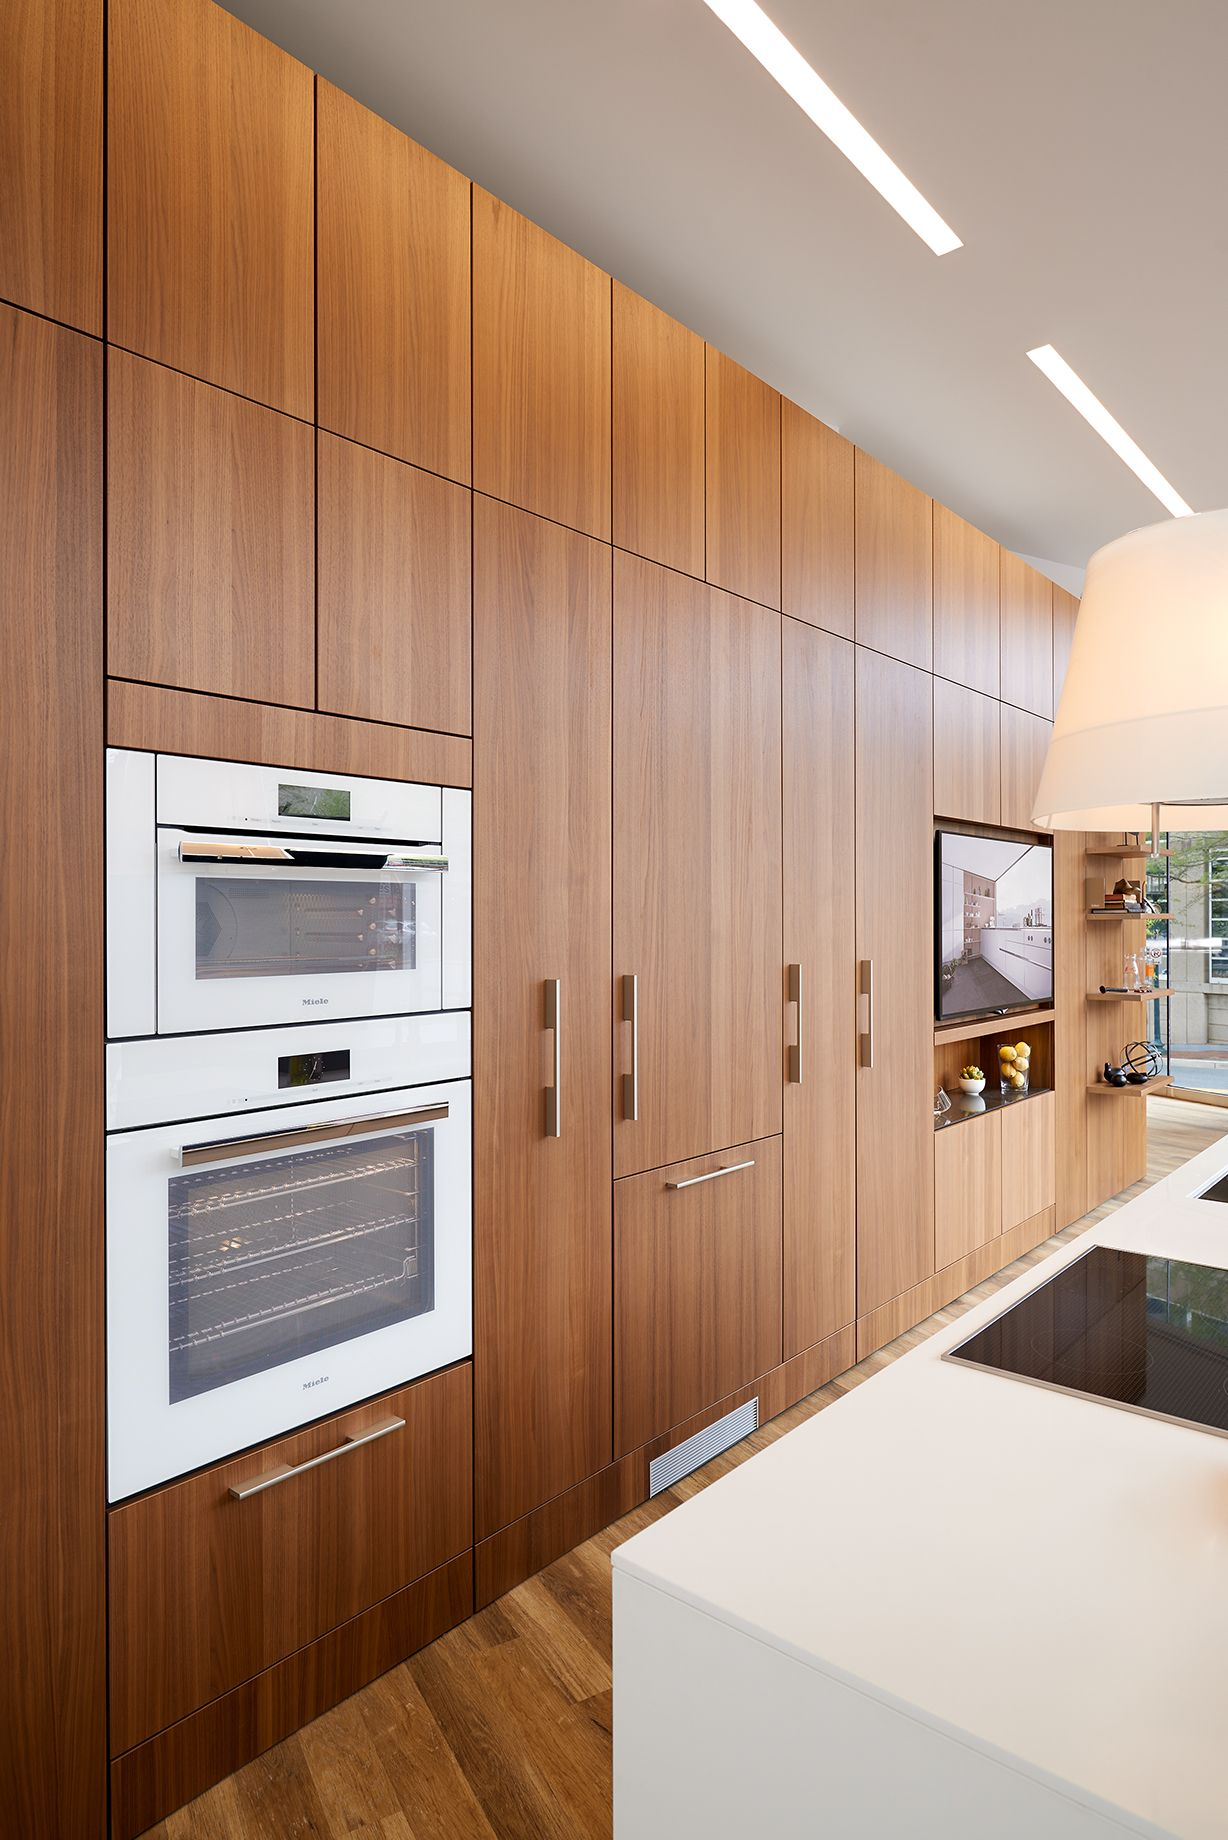 Siematic Pure Kitchen Siematic Wood Veneer Natural Walnut Cabinets Panels Siem Modern Walnut Kitchen Contemporary Kitchen Cabinets Walnut Kitchen Cabinets